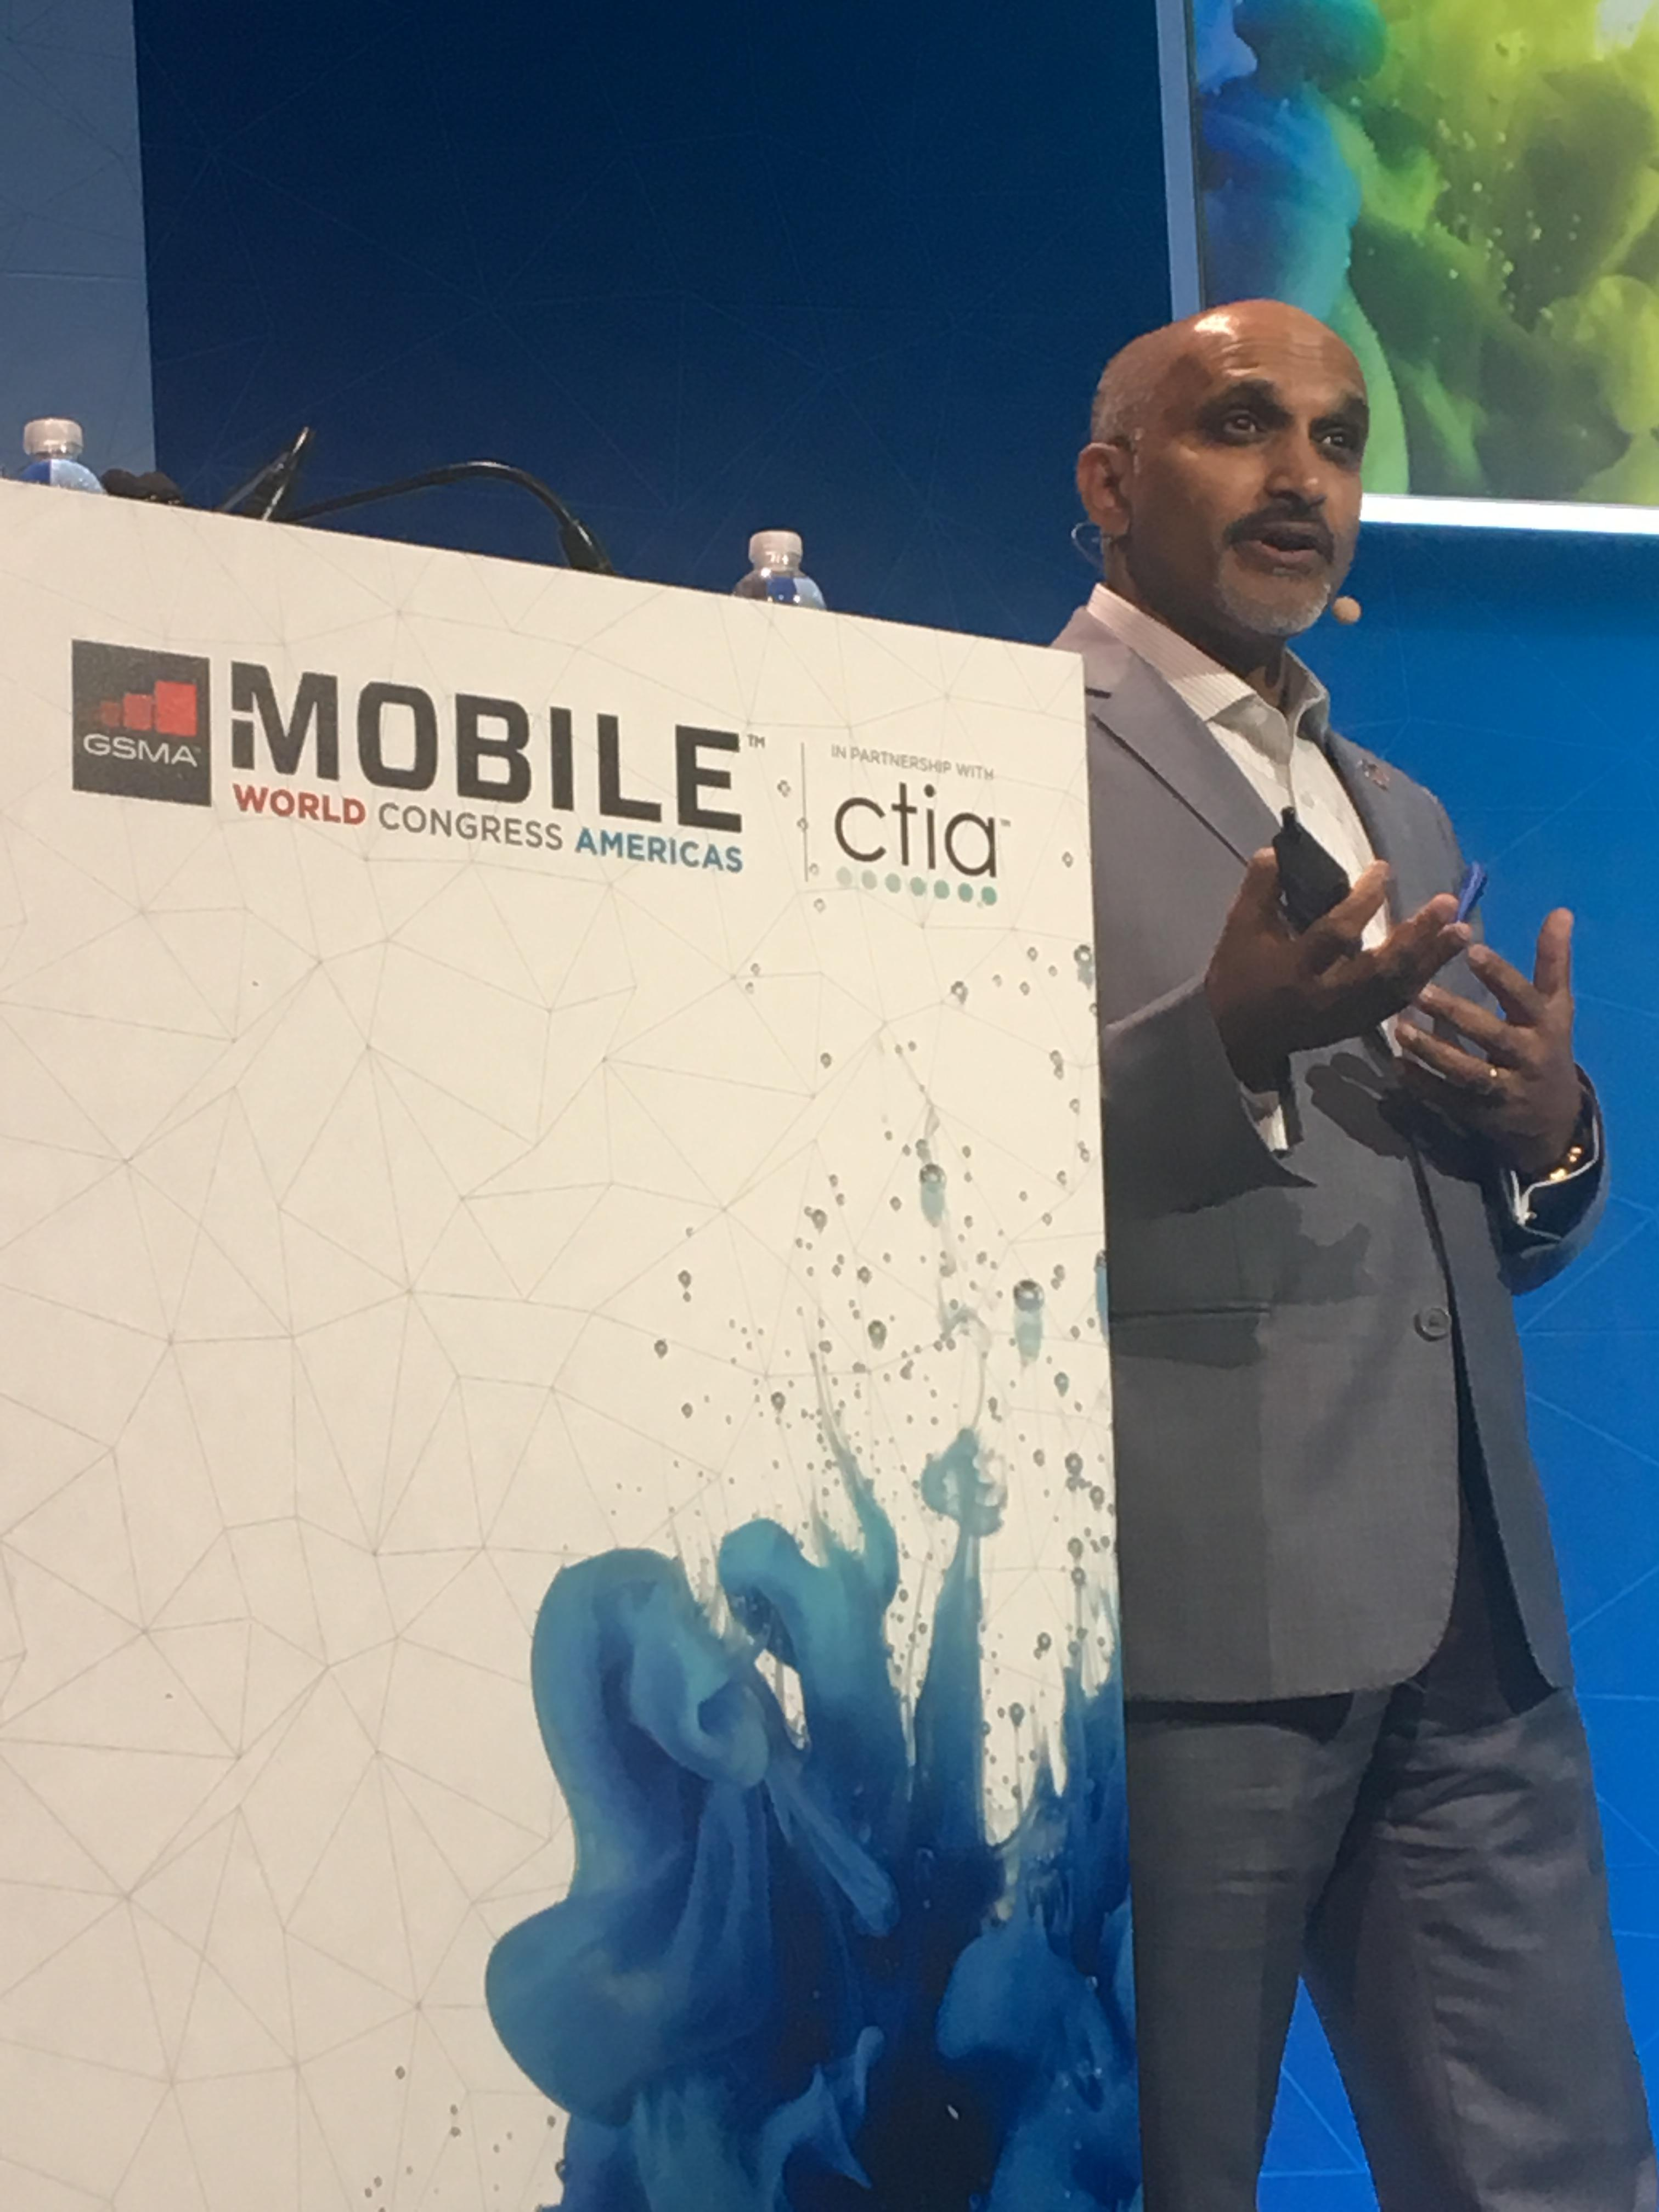 Biju Nair speaking at Mobile World Congress Americas 2017